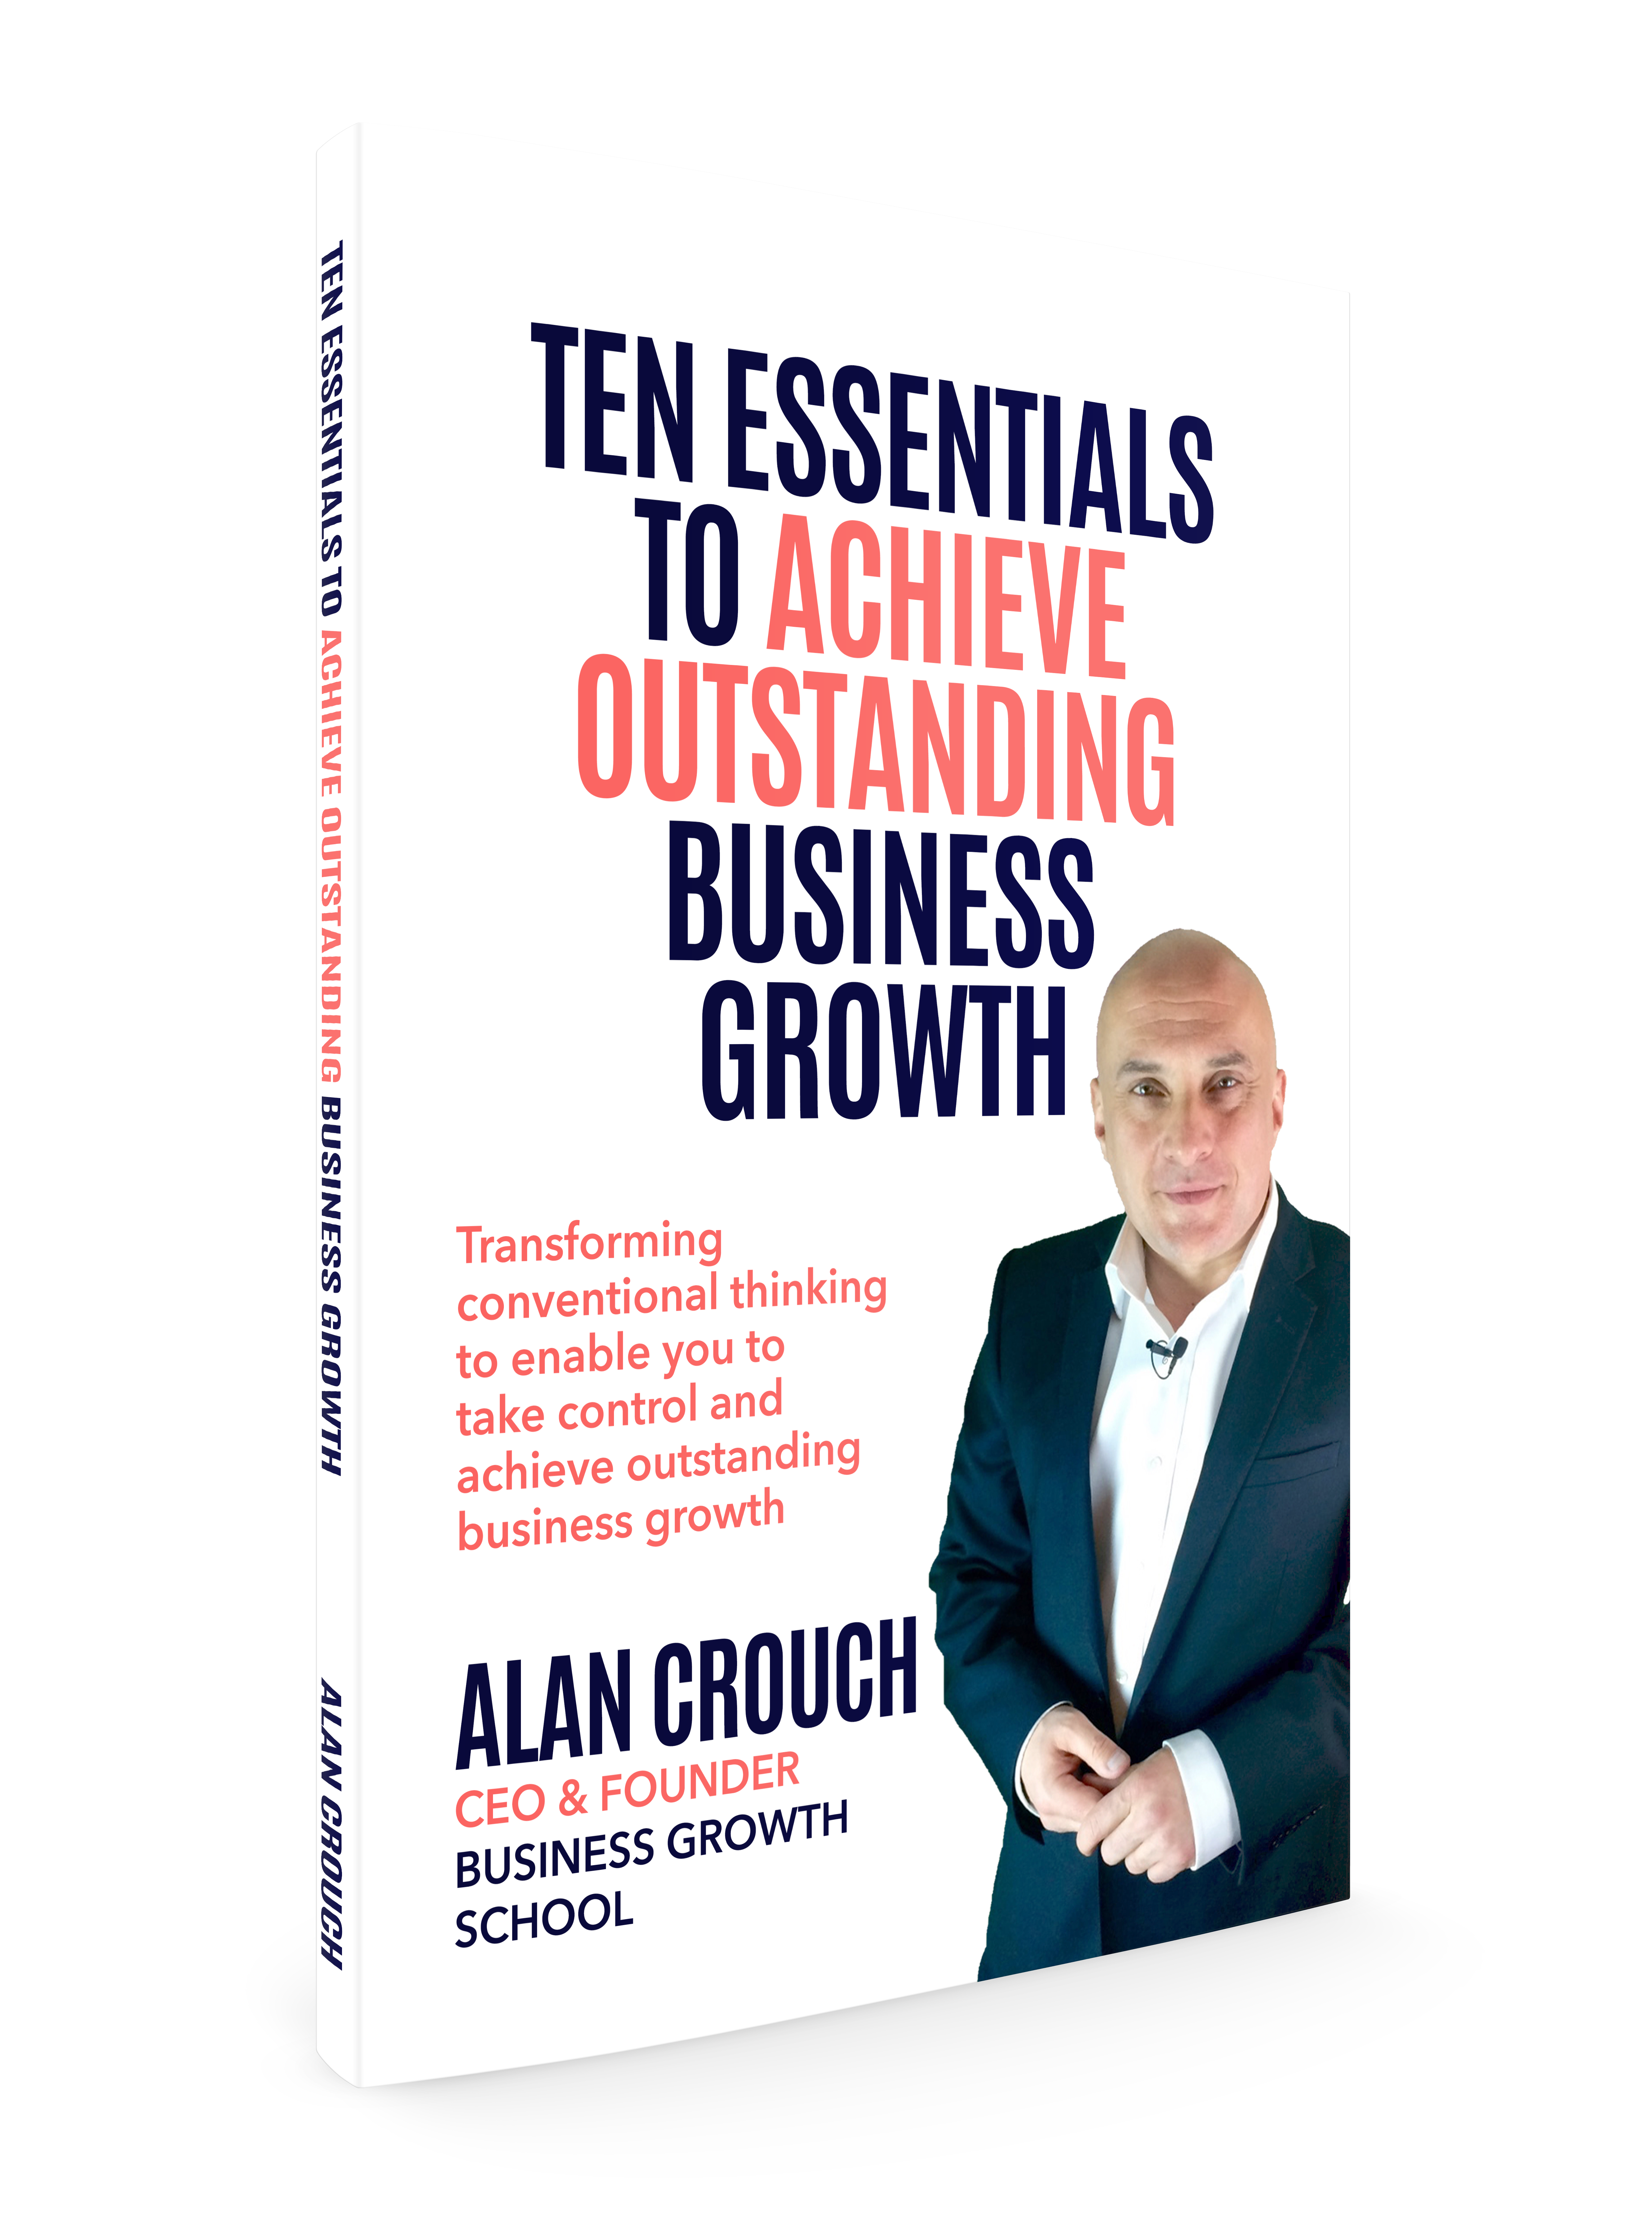 The Business Growth School - Ten Essentials to Achieve Outstanding Business Growth eBook - Author Alan Crouch CEO Founder and Author of leading and comprehensive training and business growth programme courses in Cambridge and London combining sales, marketing and strategic planning into one innovative and leading Business Growth Masterclass and plan. With results including 50% to 100% and 10x growth performances in turnover, whilst also increasing sales even before the planning meeting has even commenced, the Ten Essentials to Achieve Business Growth provides you with the Top Ten essentials that you need to be completely focused on to achieve outstanding business growth success. These ten essentials are unique to the Business Growth School and are a product of real experience in practise, where business have achieved outstanding business growth. Executive training, learning new skills, executive mentoring, on site facilitation, coaching and full VIP Support are all part of the comprehensive services from the Business Growth School.